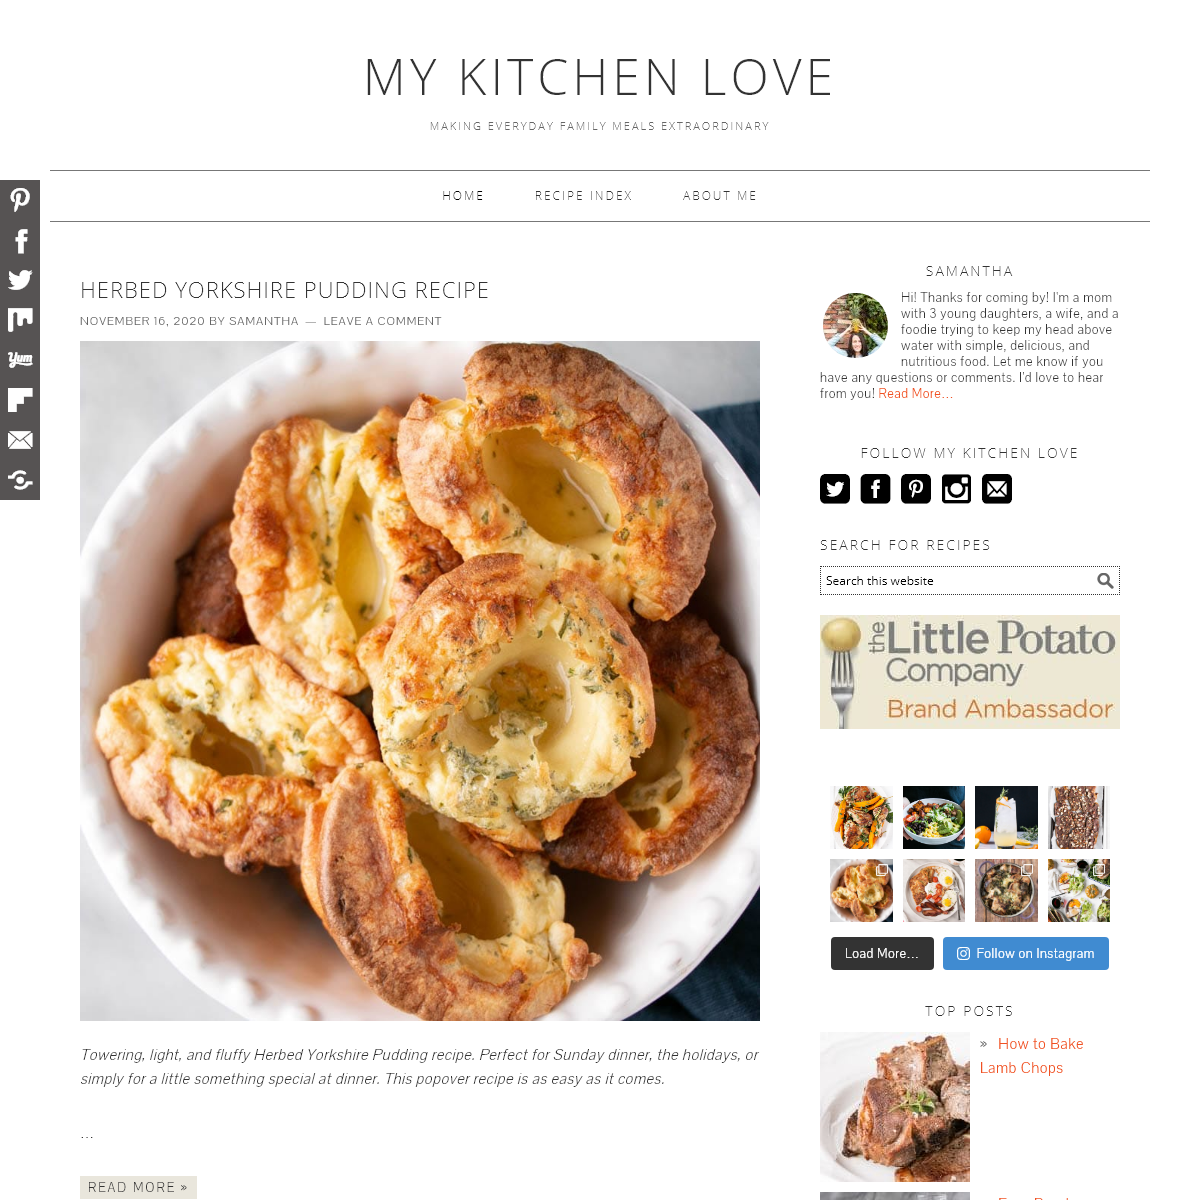 My Kitchen Love - making everyday family meals extraordinary